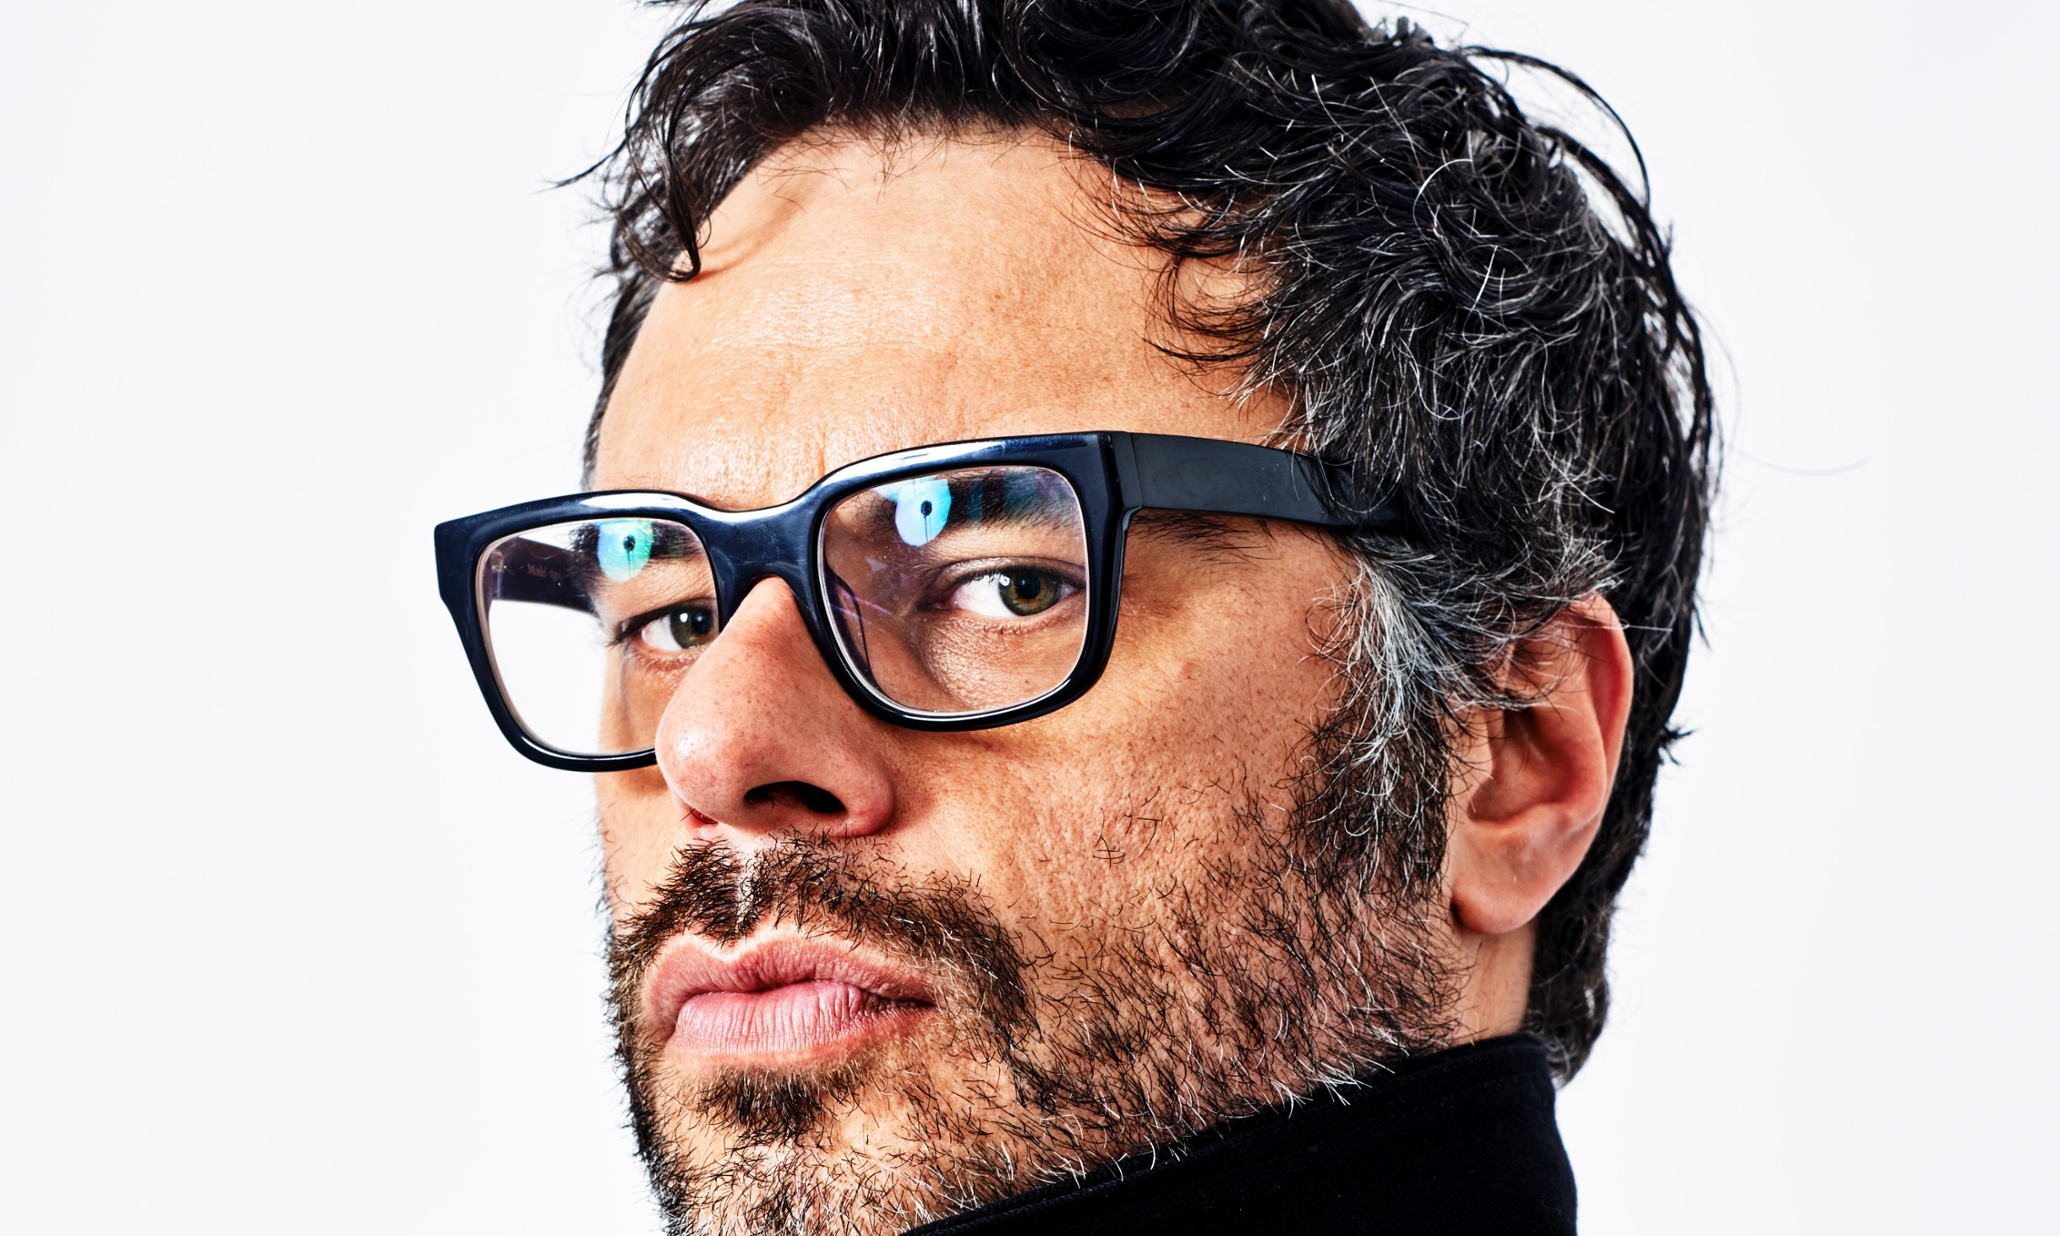 jemaine clement - shiny text